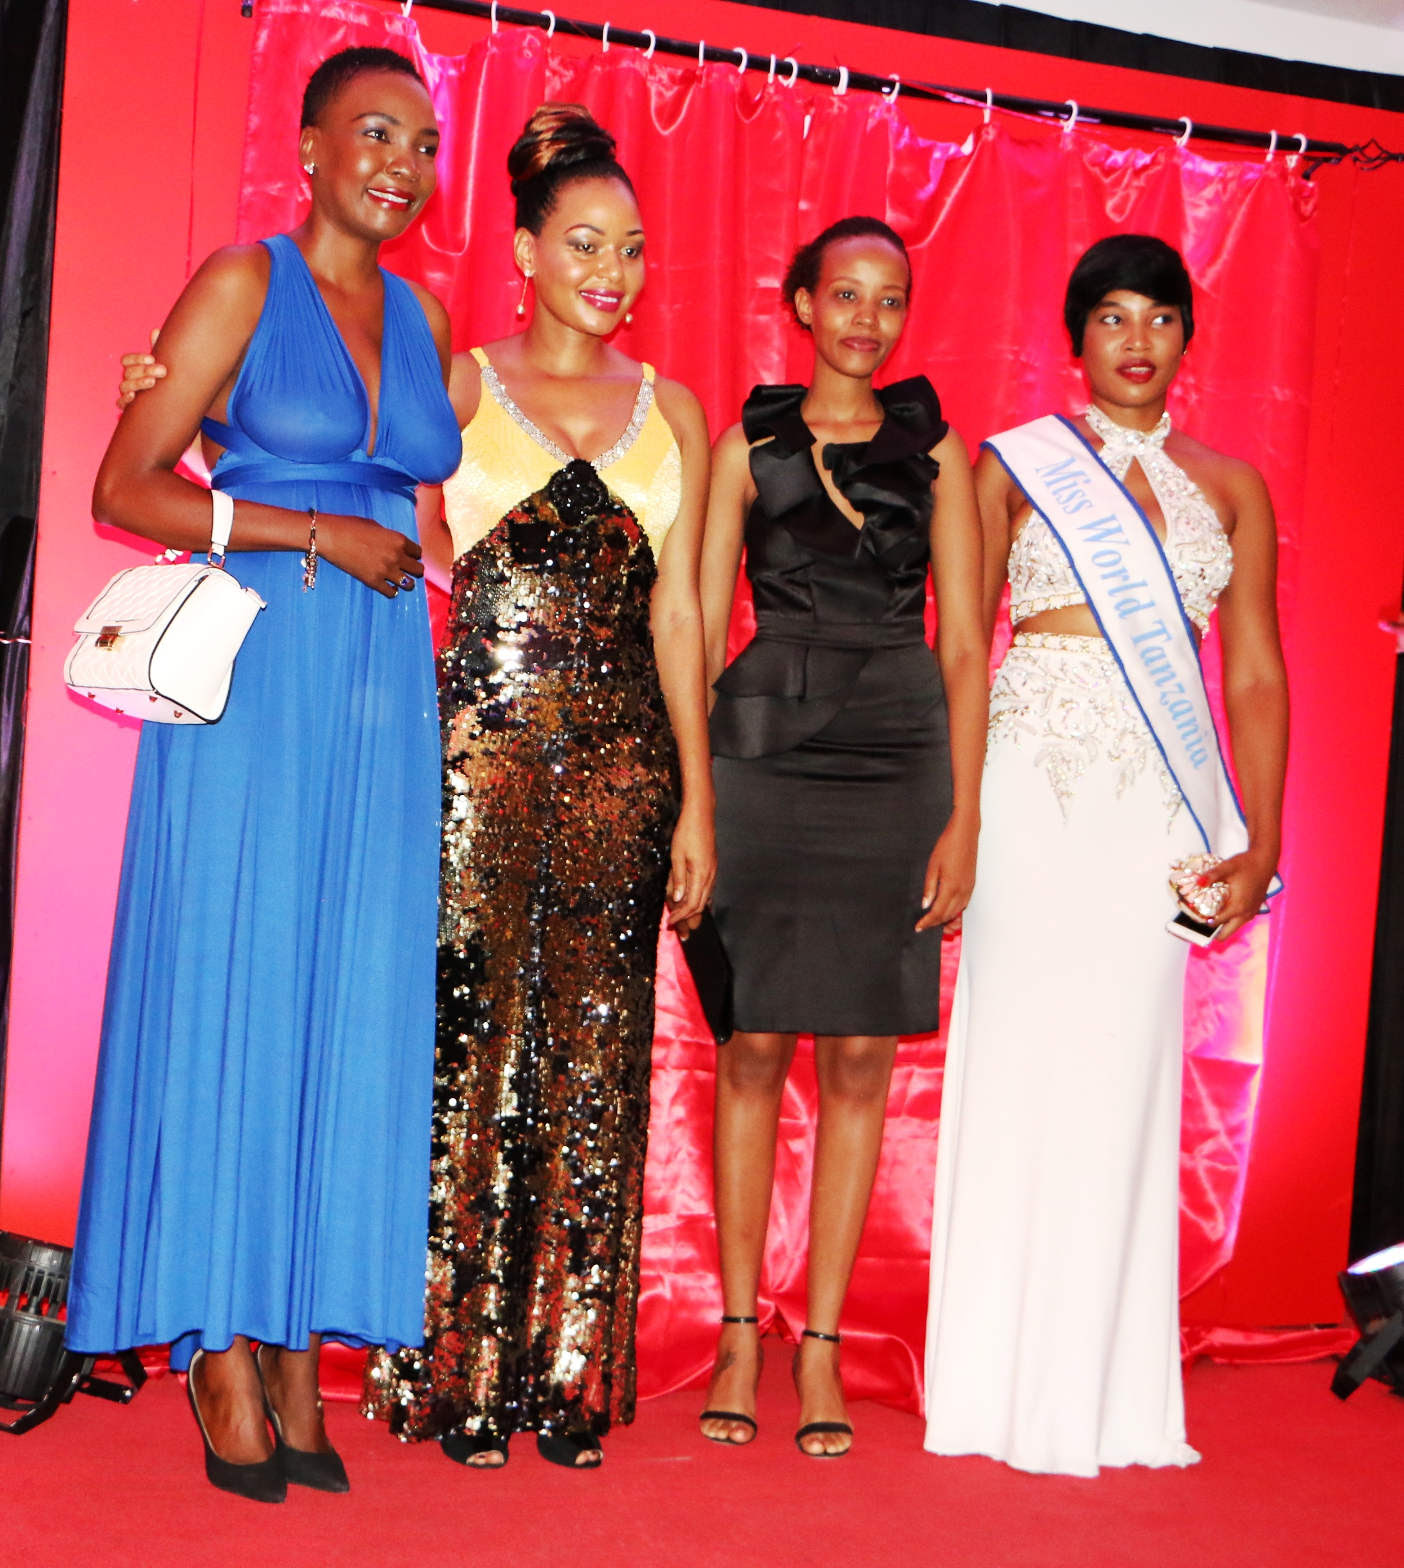 NURU THE LIGHT: MISS TANZANIA YA AMKA TENA,THE LAUNCH TOOK